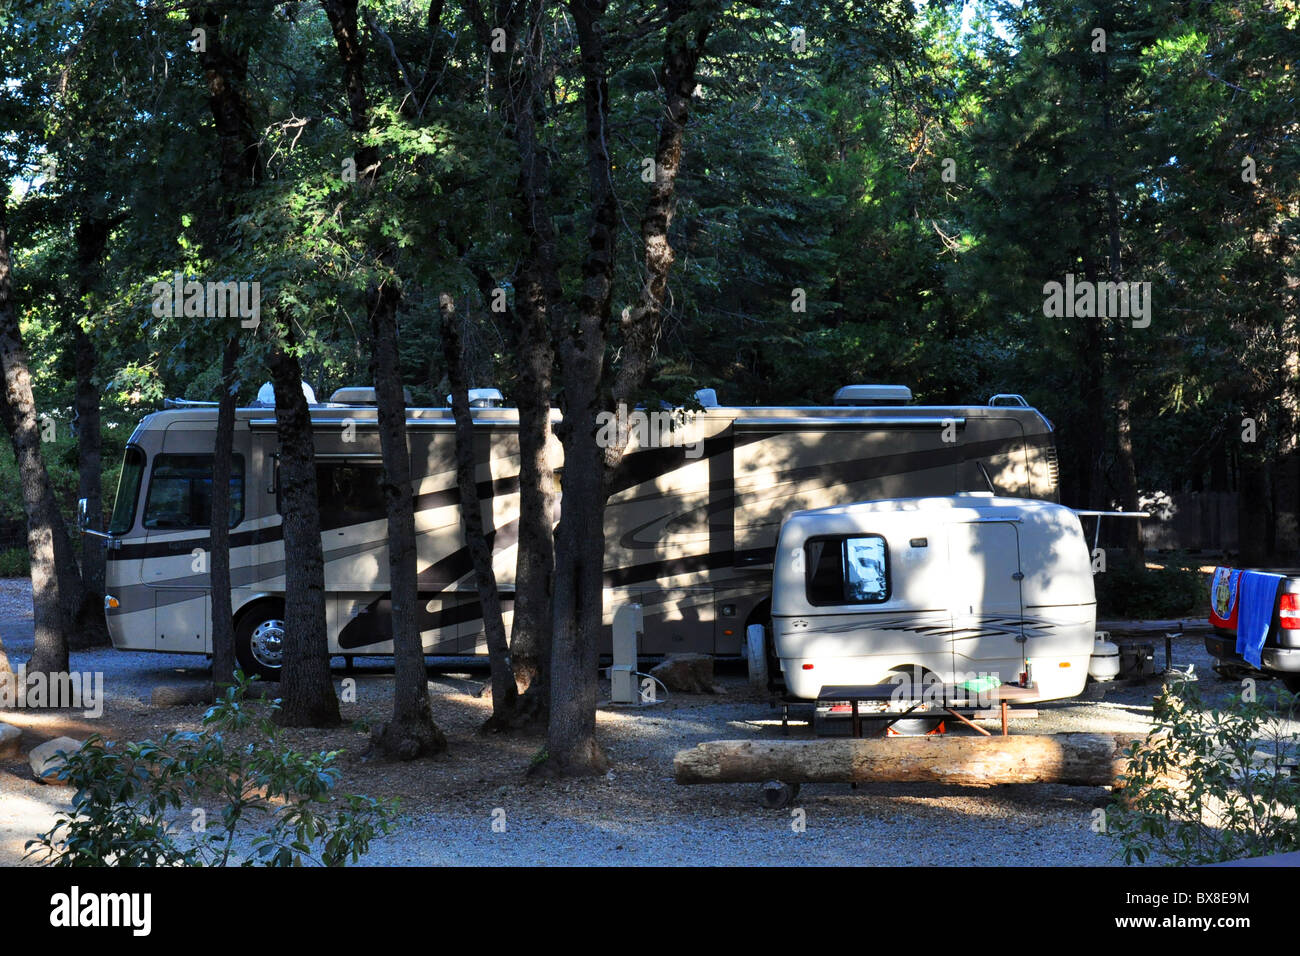 Little and large caravans on a campsite in California USA - Stock Image